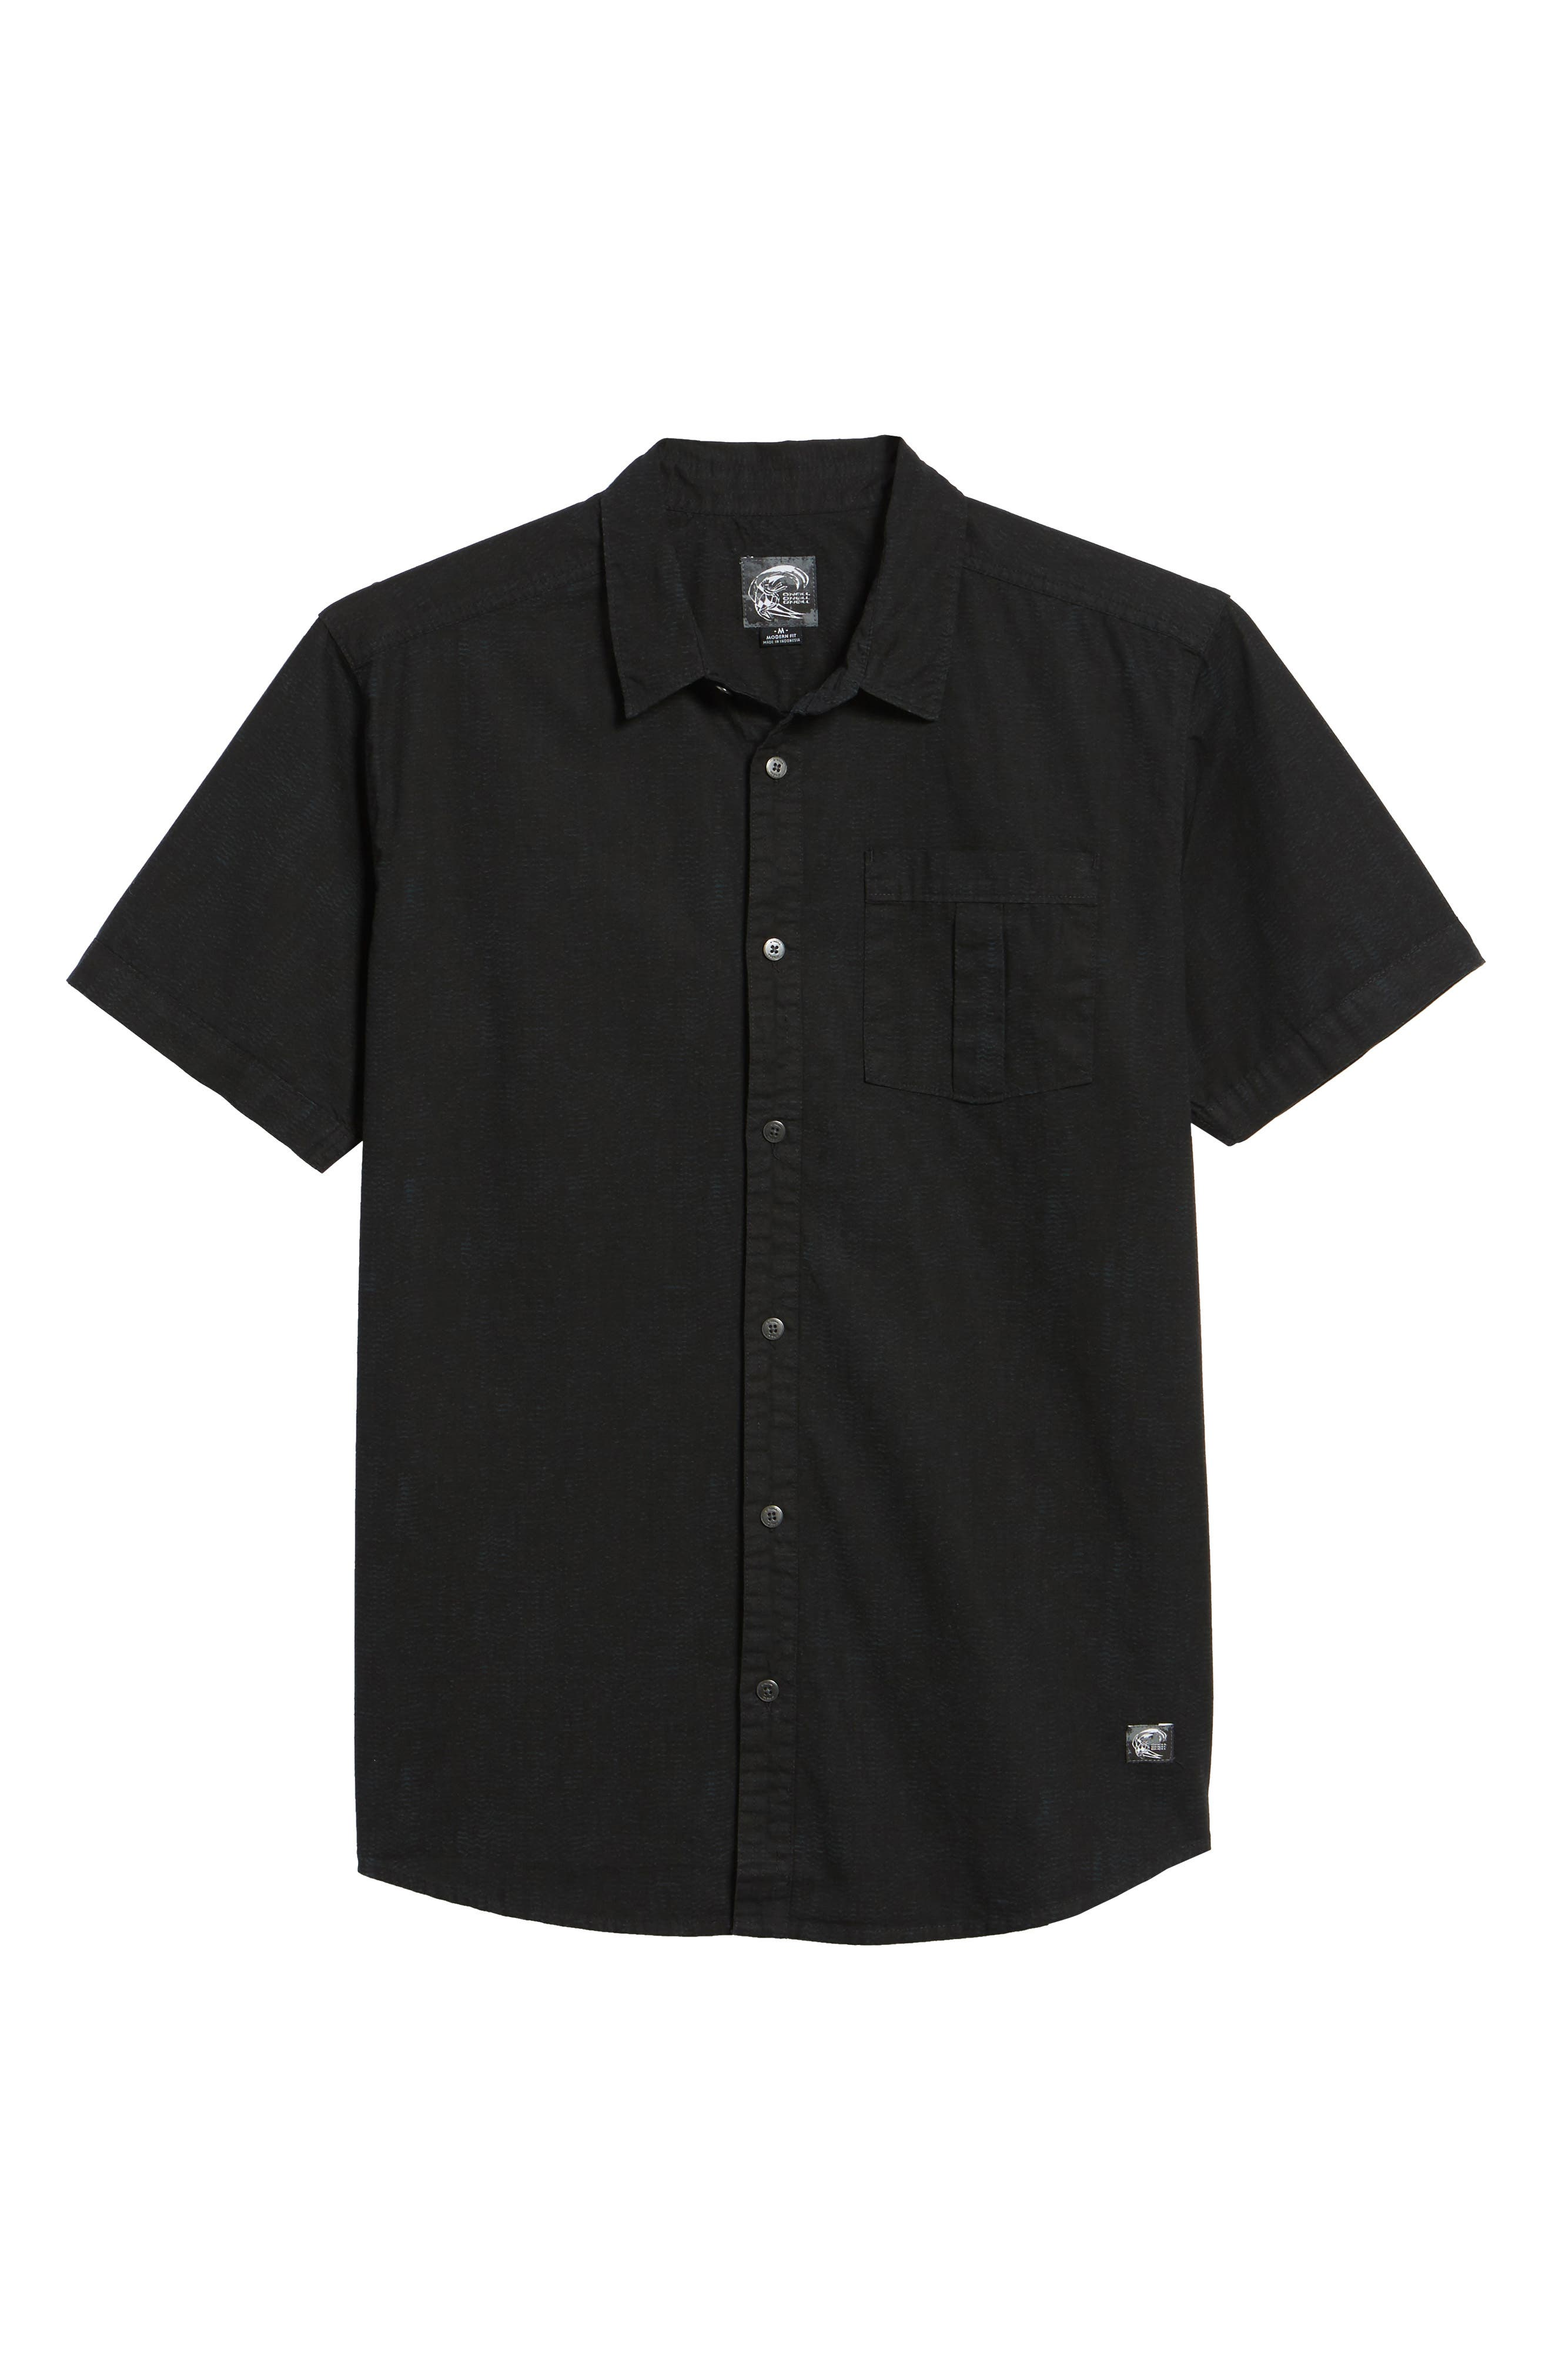 Untitled Woven Shirt,                             Alternate thumbnail 6, color,                             001